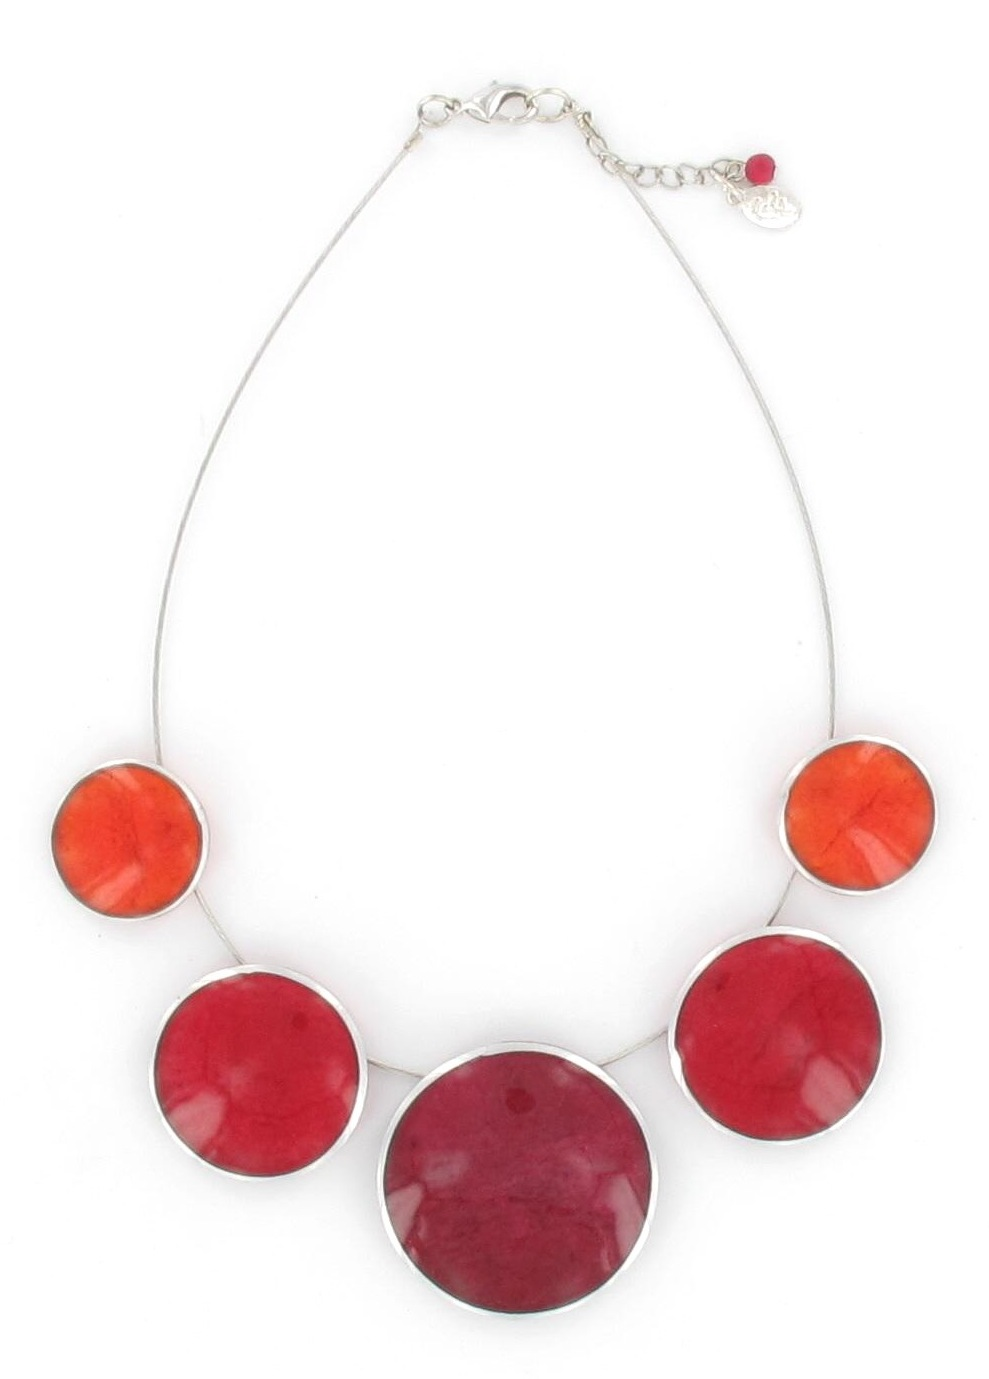 Collier1R_03 - copie (2)